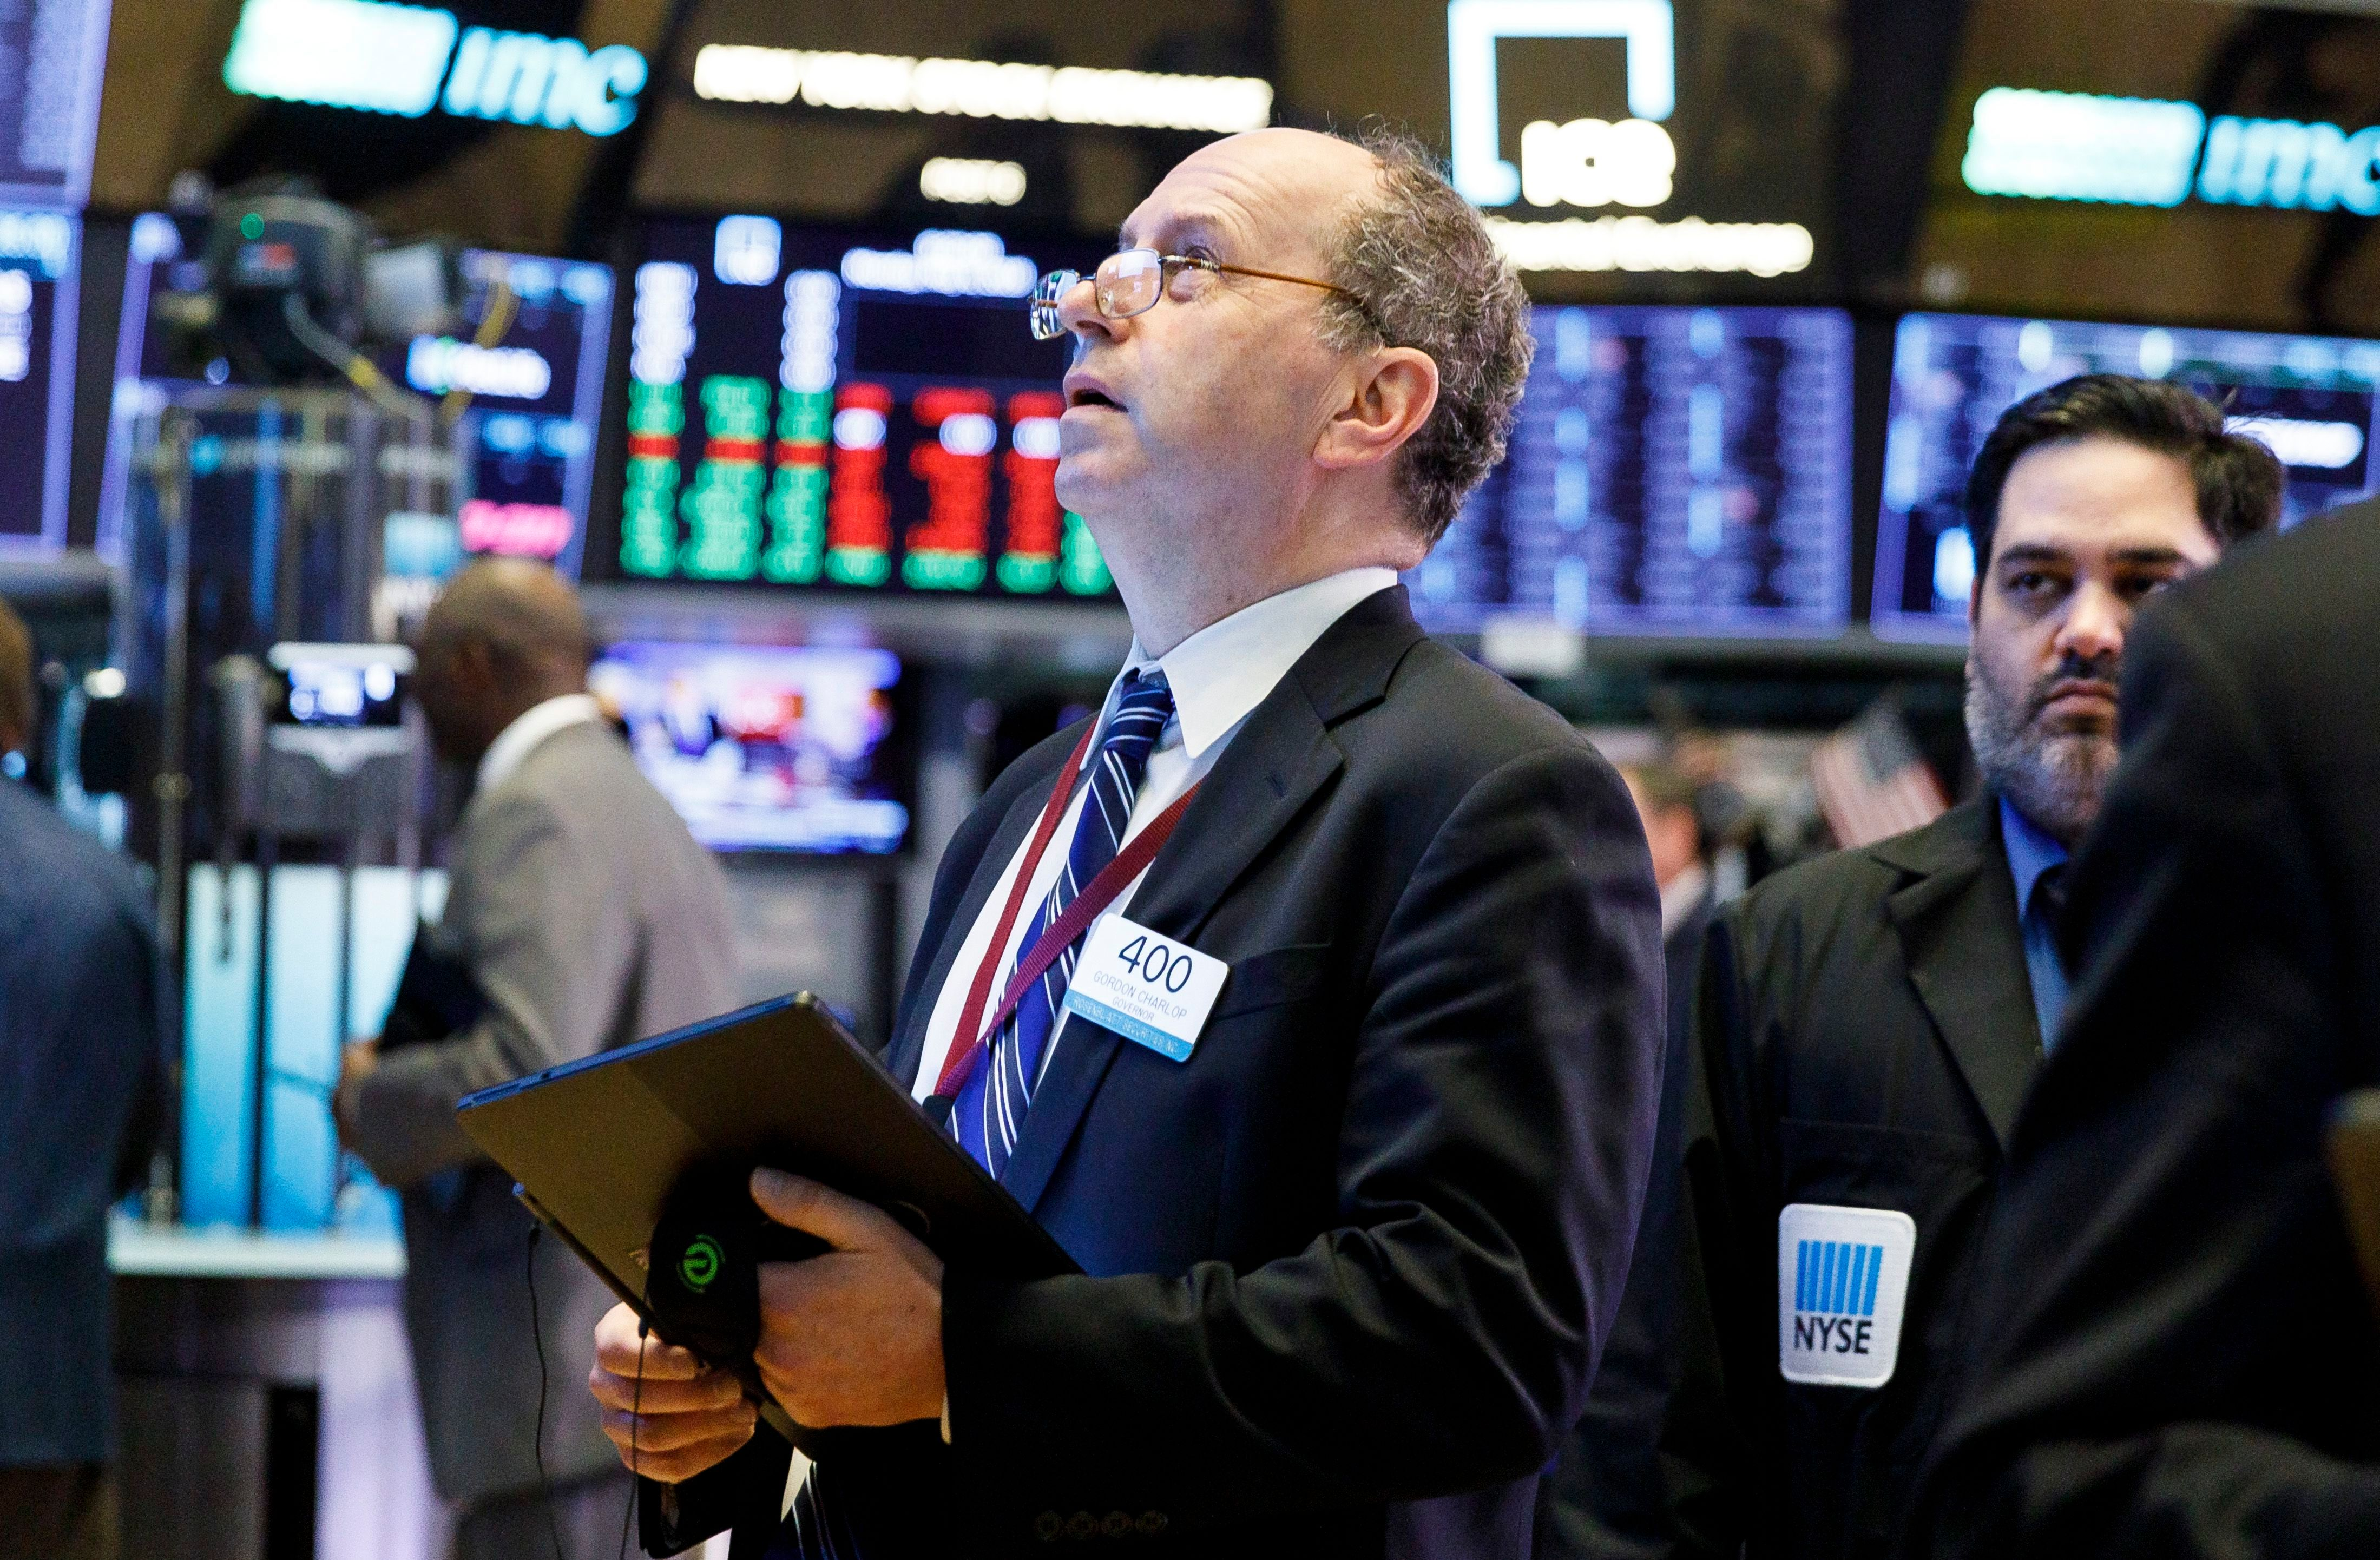 Traders work on the floor of the New York Stock Exchange in New York, New York, USA, on 06 May 2019. The Dow Jones industrials lost over 400 points in early trading in as a result of investor unease regarding developments in trade negotiations between the United States and China.New York Stock Exchange, USA - 06 May 2019